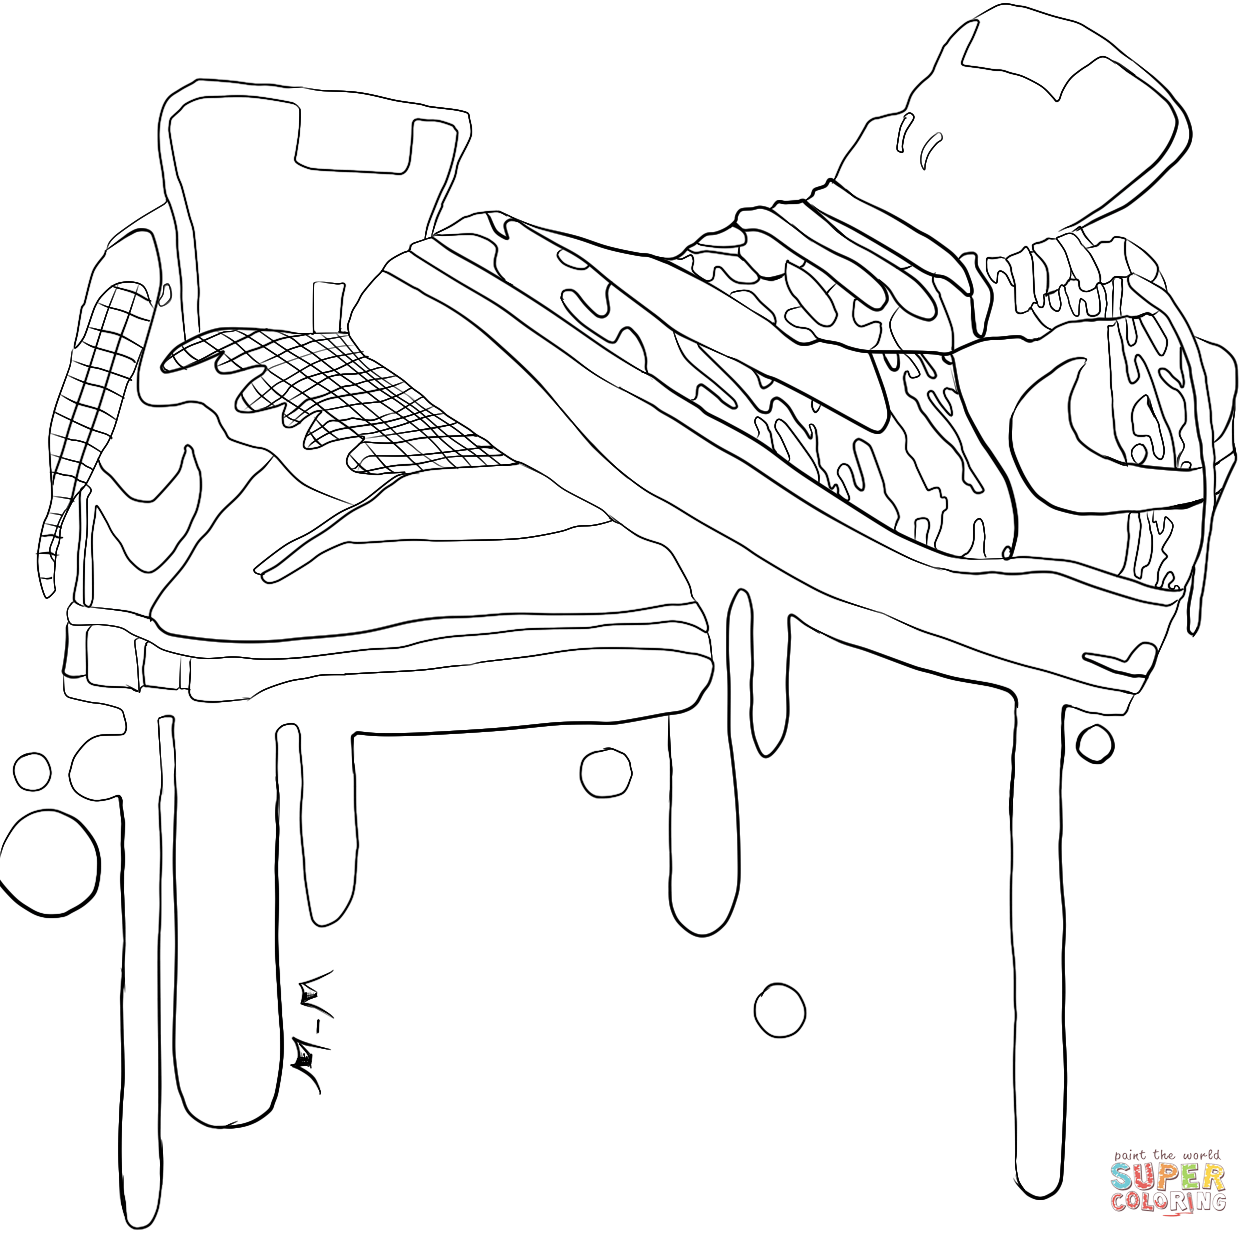 Sneakers coloring #8, Download drawings